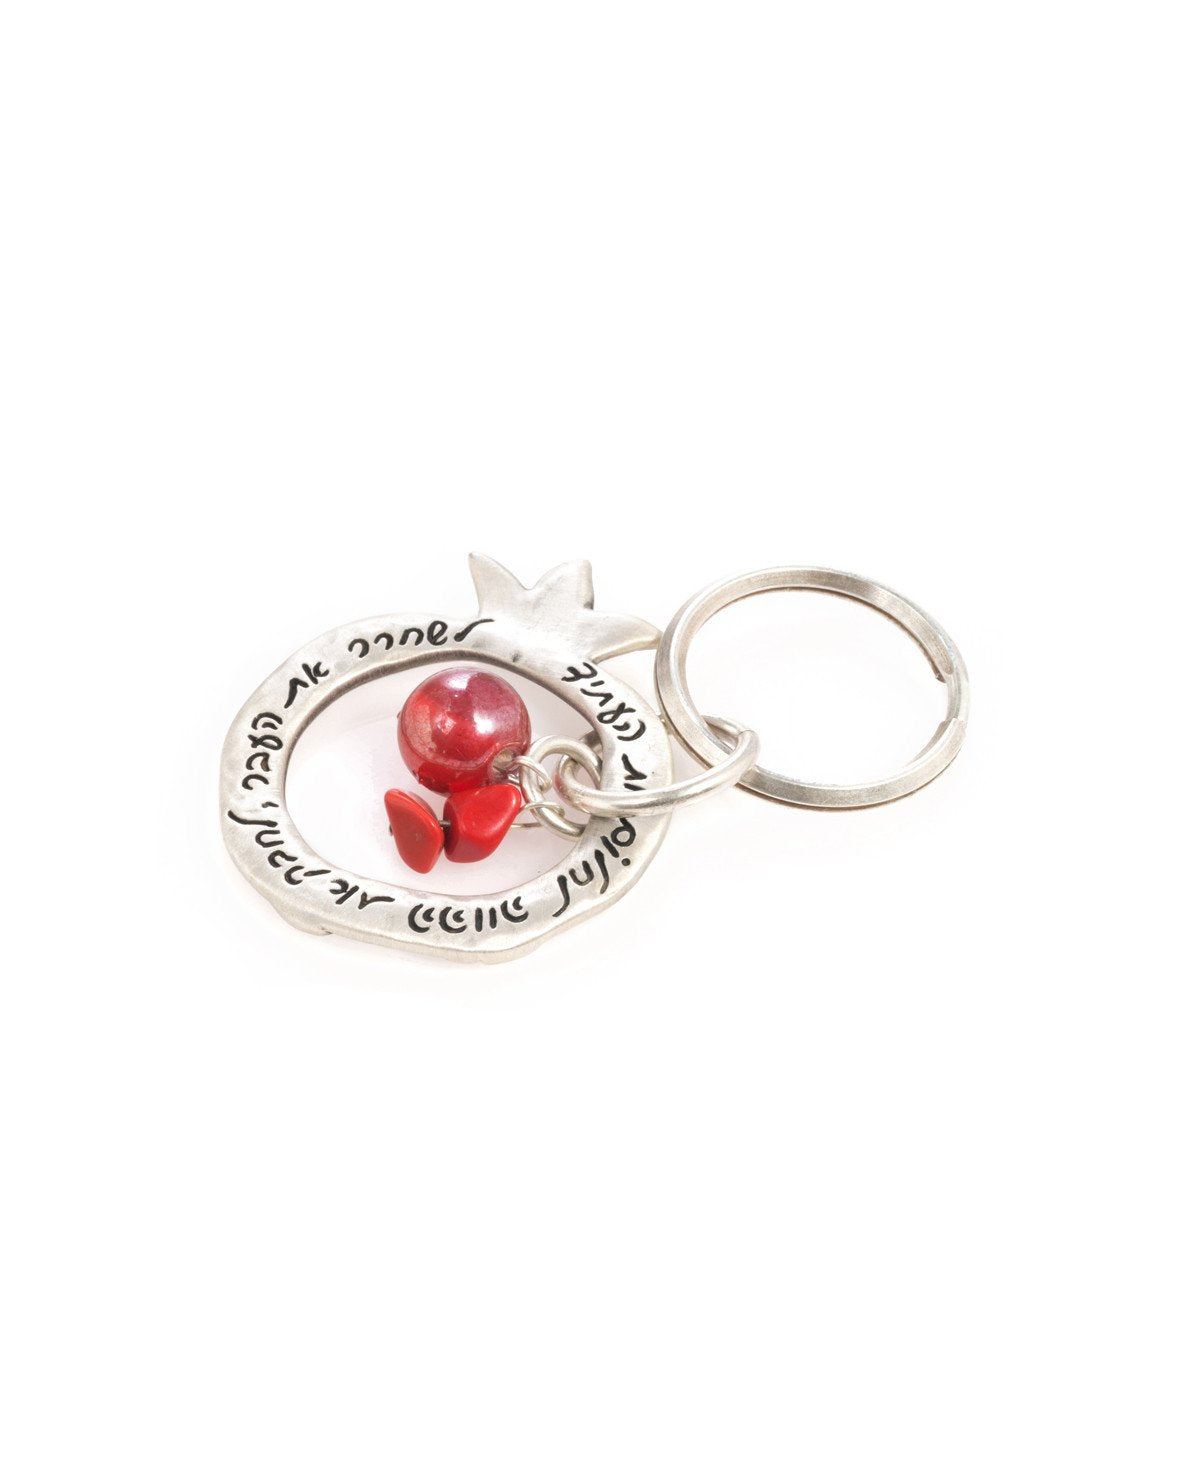 "A charming keychain with an important message for life. The keychain is designed as a hollow pomegranate coated in sterling silver. At its center hang a red bead and two beautiful red stones. Written on one side of the pomegranate frame are the words ""Let go of the past, embrace the present, dream the future"". On the other side of the frame are little pomegranate decorations. The keychain is strong and reliable. A wonderful and exciting gift for him or for her, or for anyone in fact who wants to live life a"